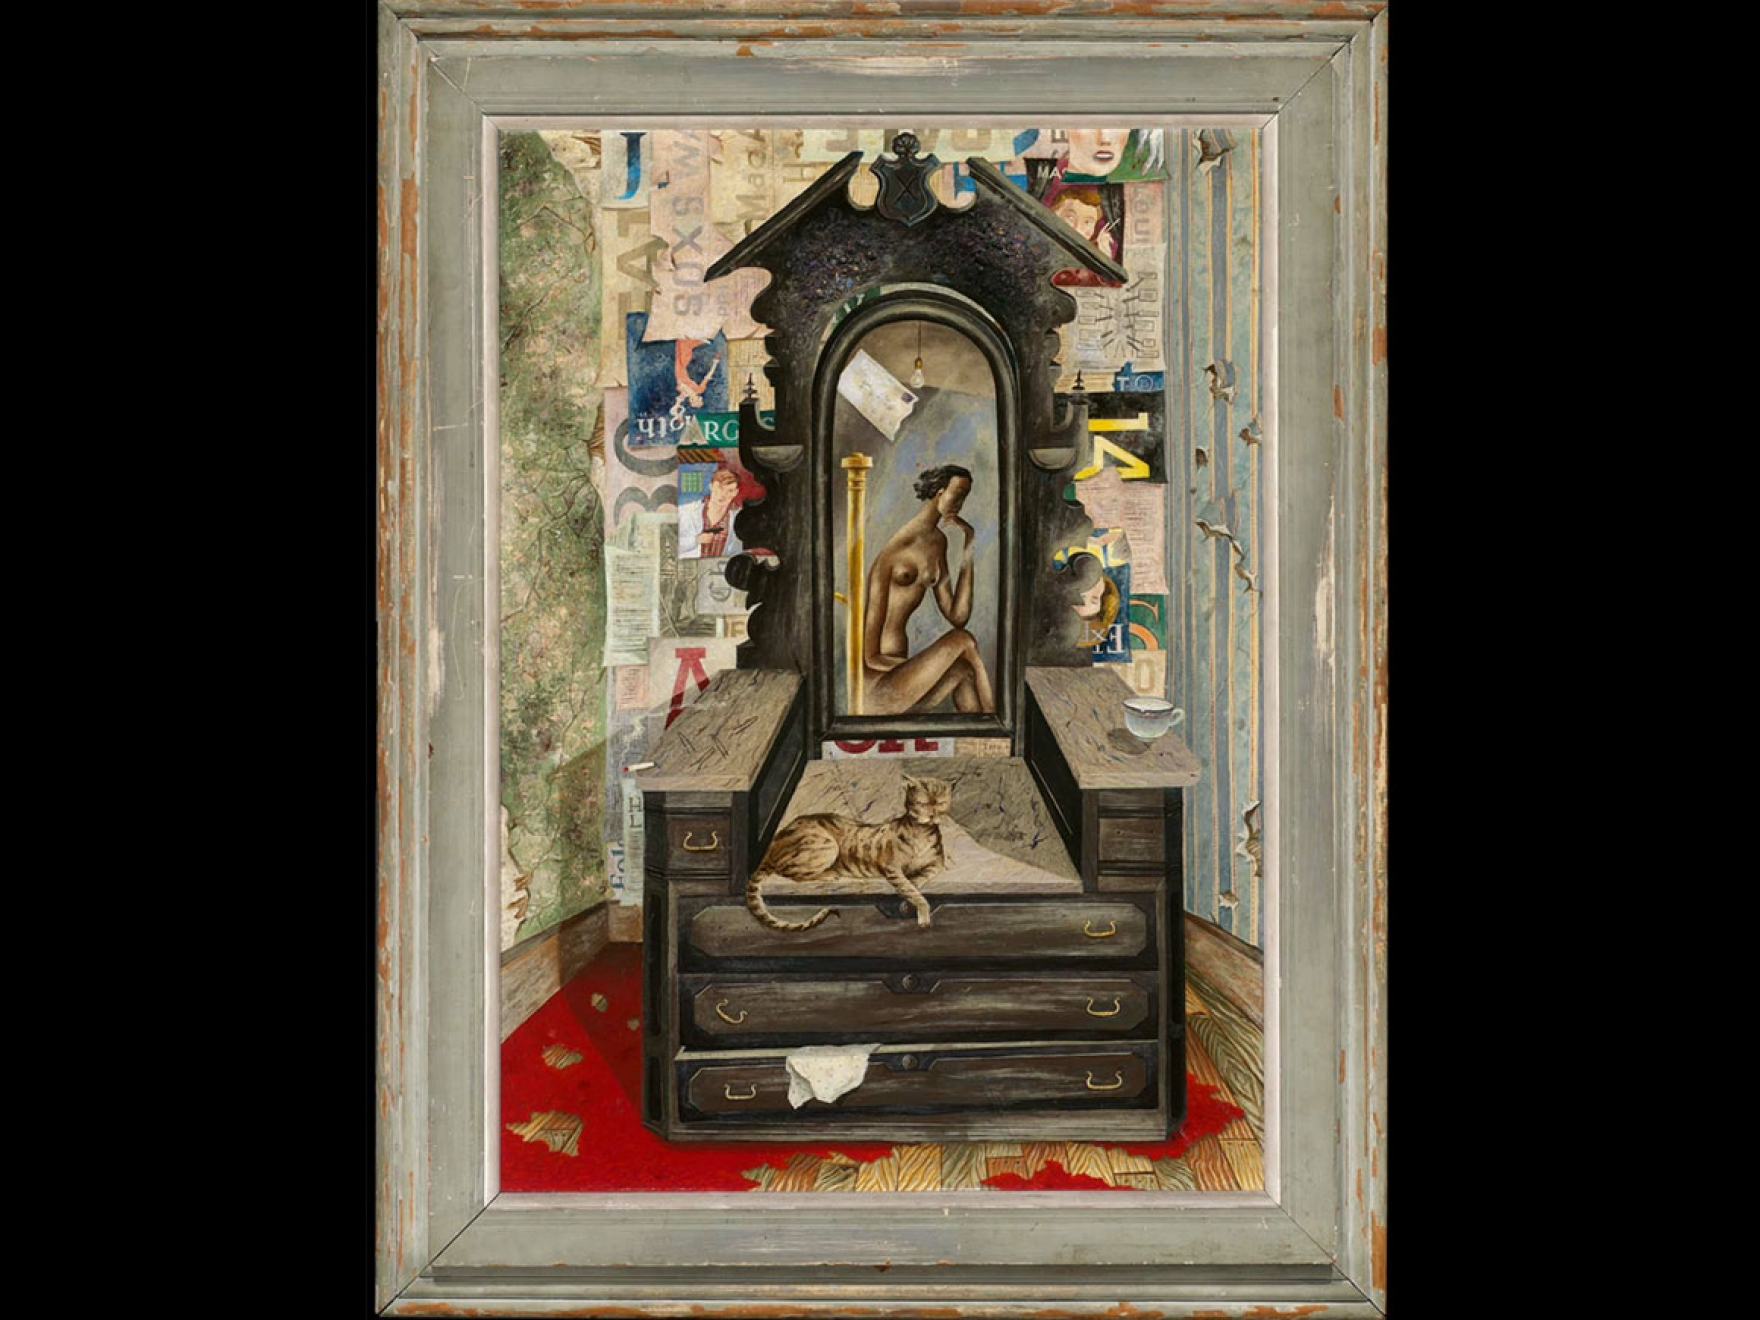 Eldzier Cortor's painting, Room No. V